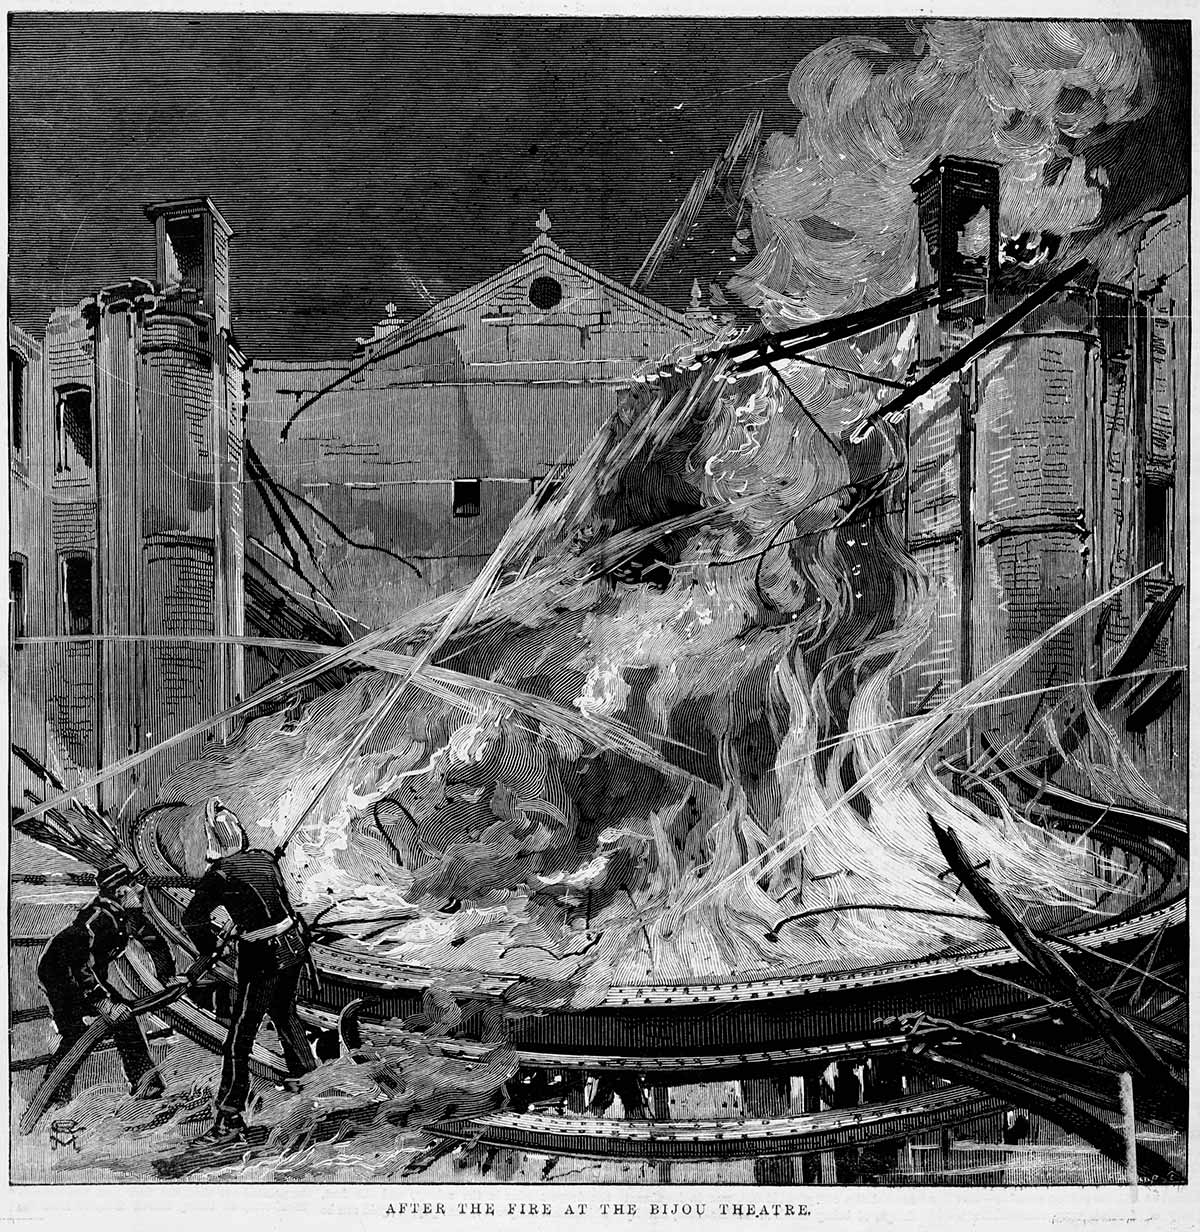 The Bijou Theatre fire in 1889 was adisaster and resulted in the deaths of twofirefighters on duty. The outcome of theinquest into those deaths found that thecurrent system of voluntary and company-based fire brigades was totally inadequateand something needed to change. IAN01/05/89/65, State Library Victoria.